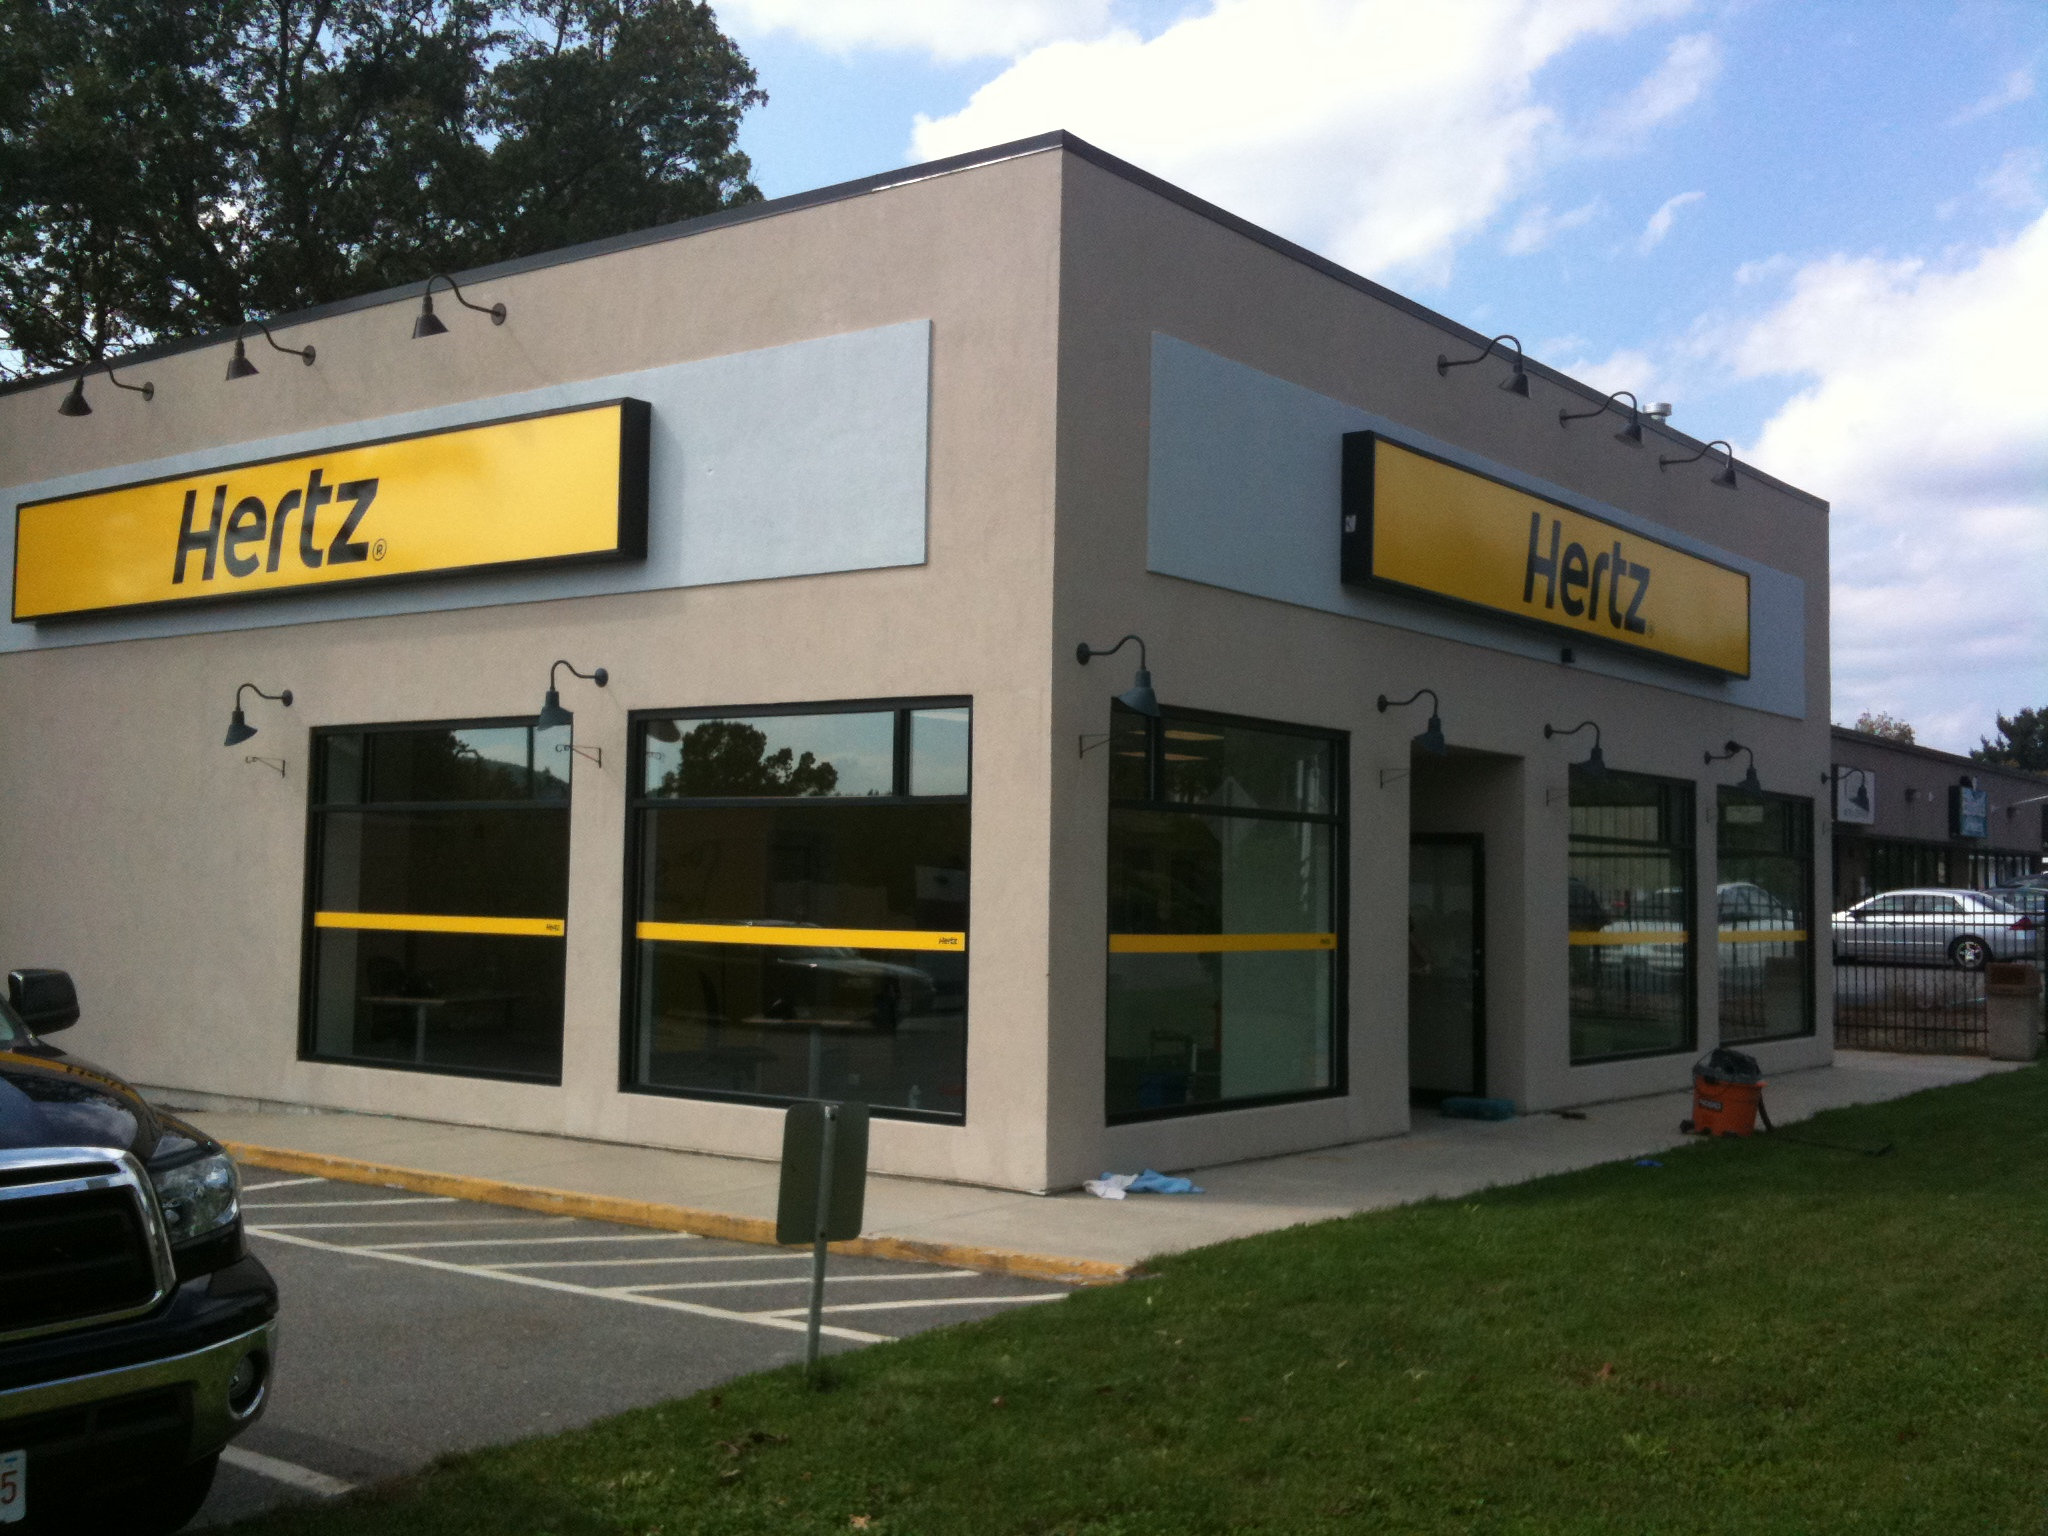 Hertz Building Sign.JPG